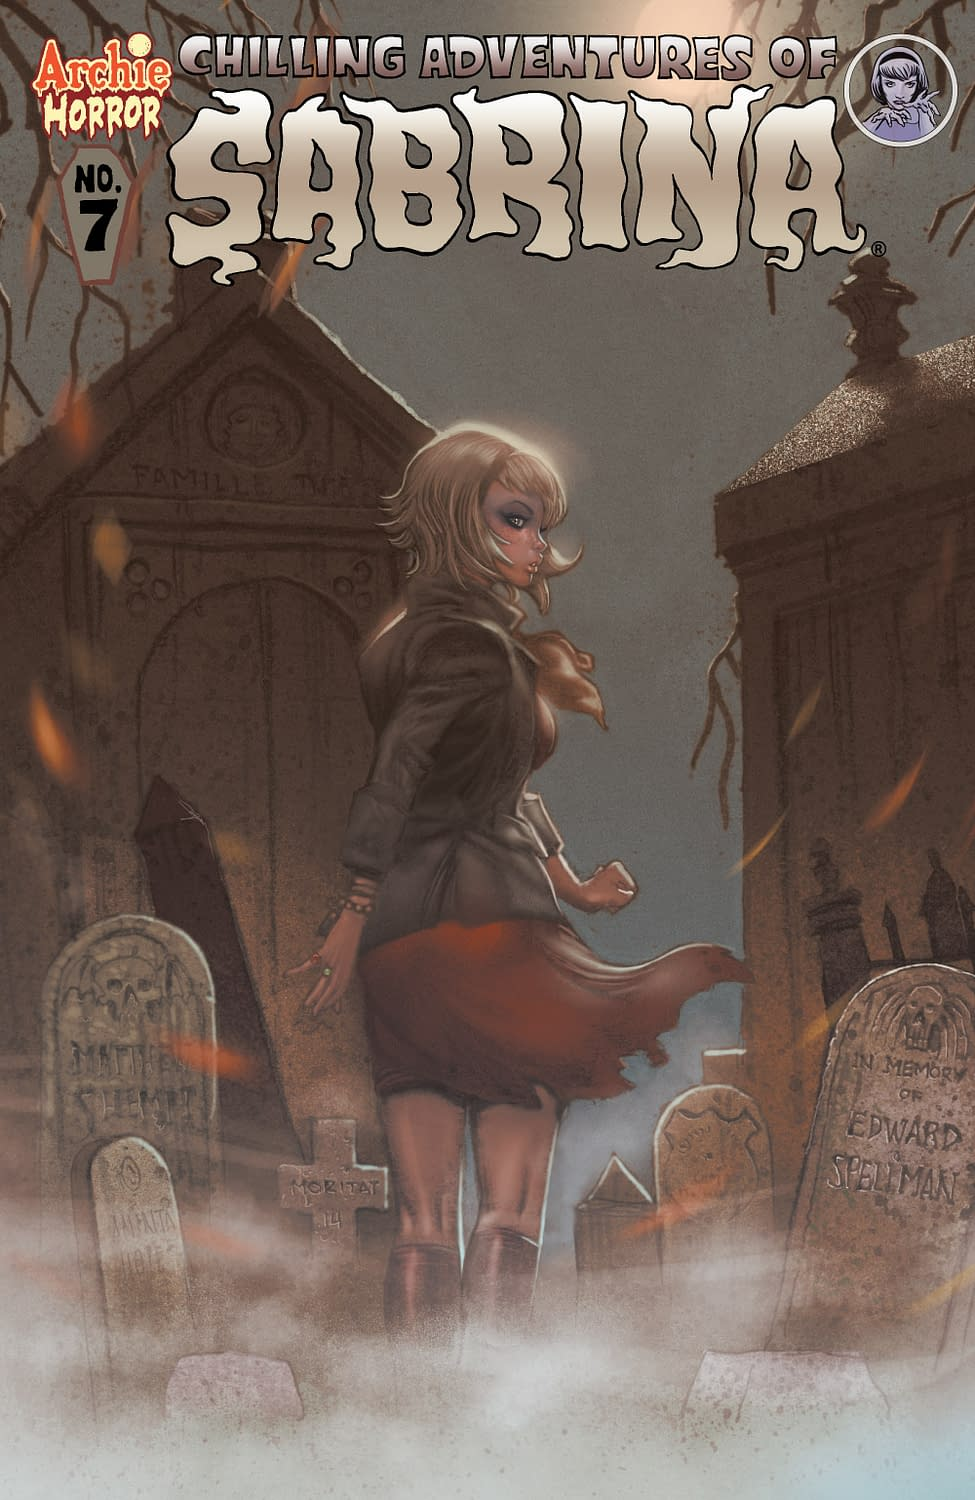 Check Out This 'The Chilling Adventures Of Sabrina #7' Preview; Issue In Stores Tomorrow